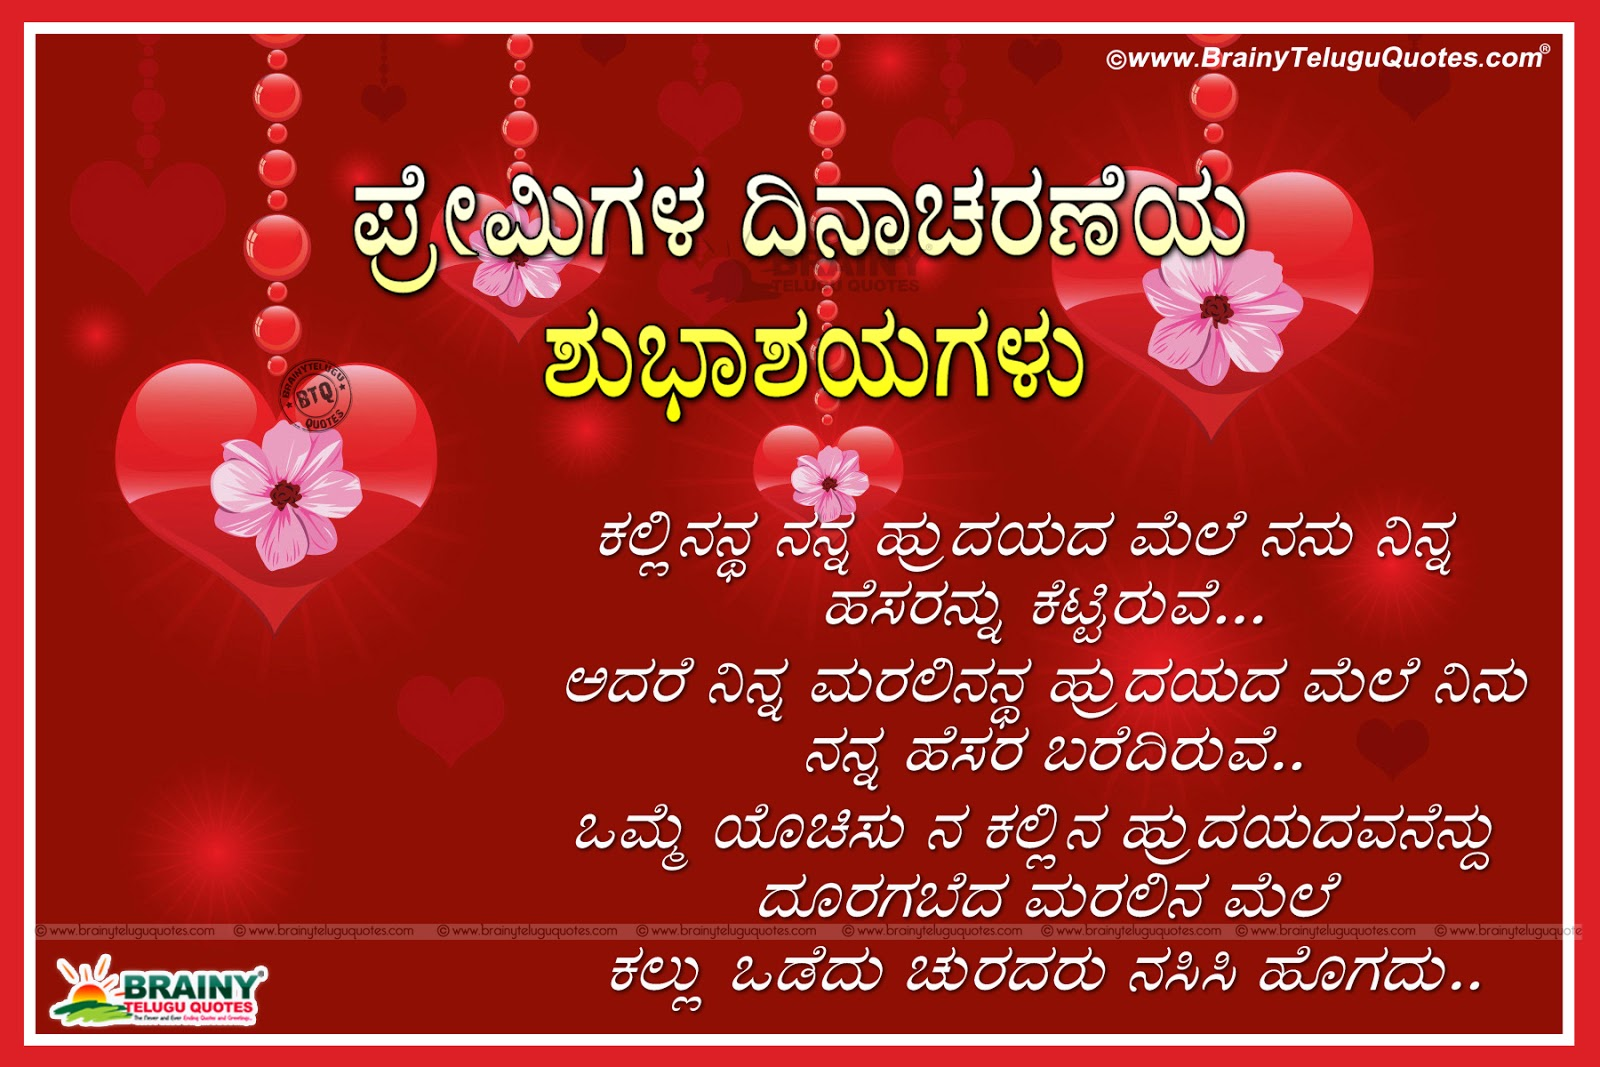 Valentines Day Quotations And Messages Greetings In Kannada Language